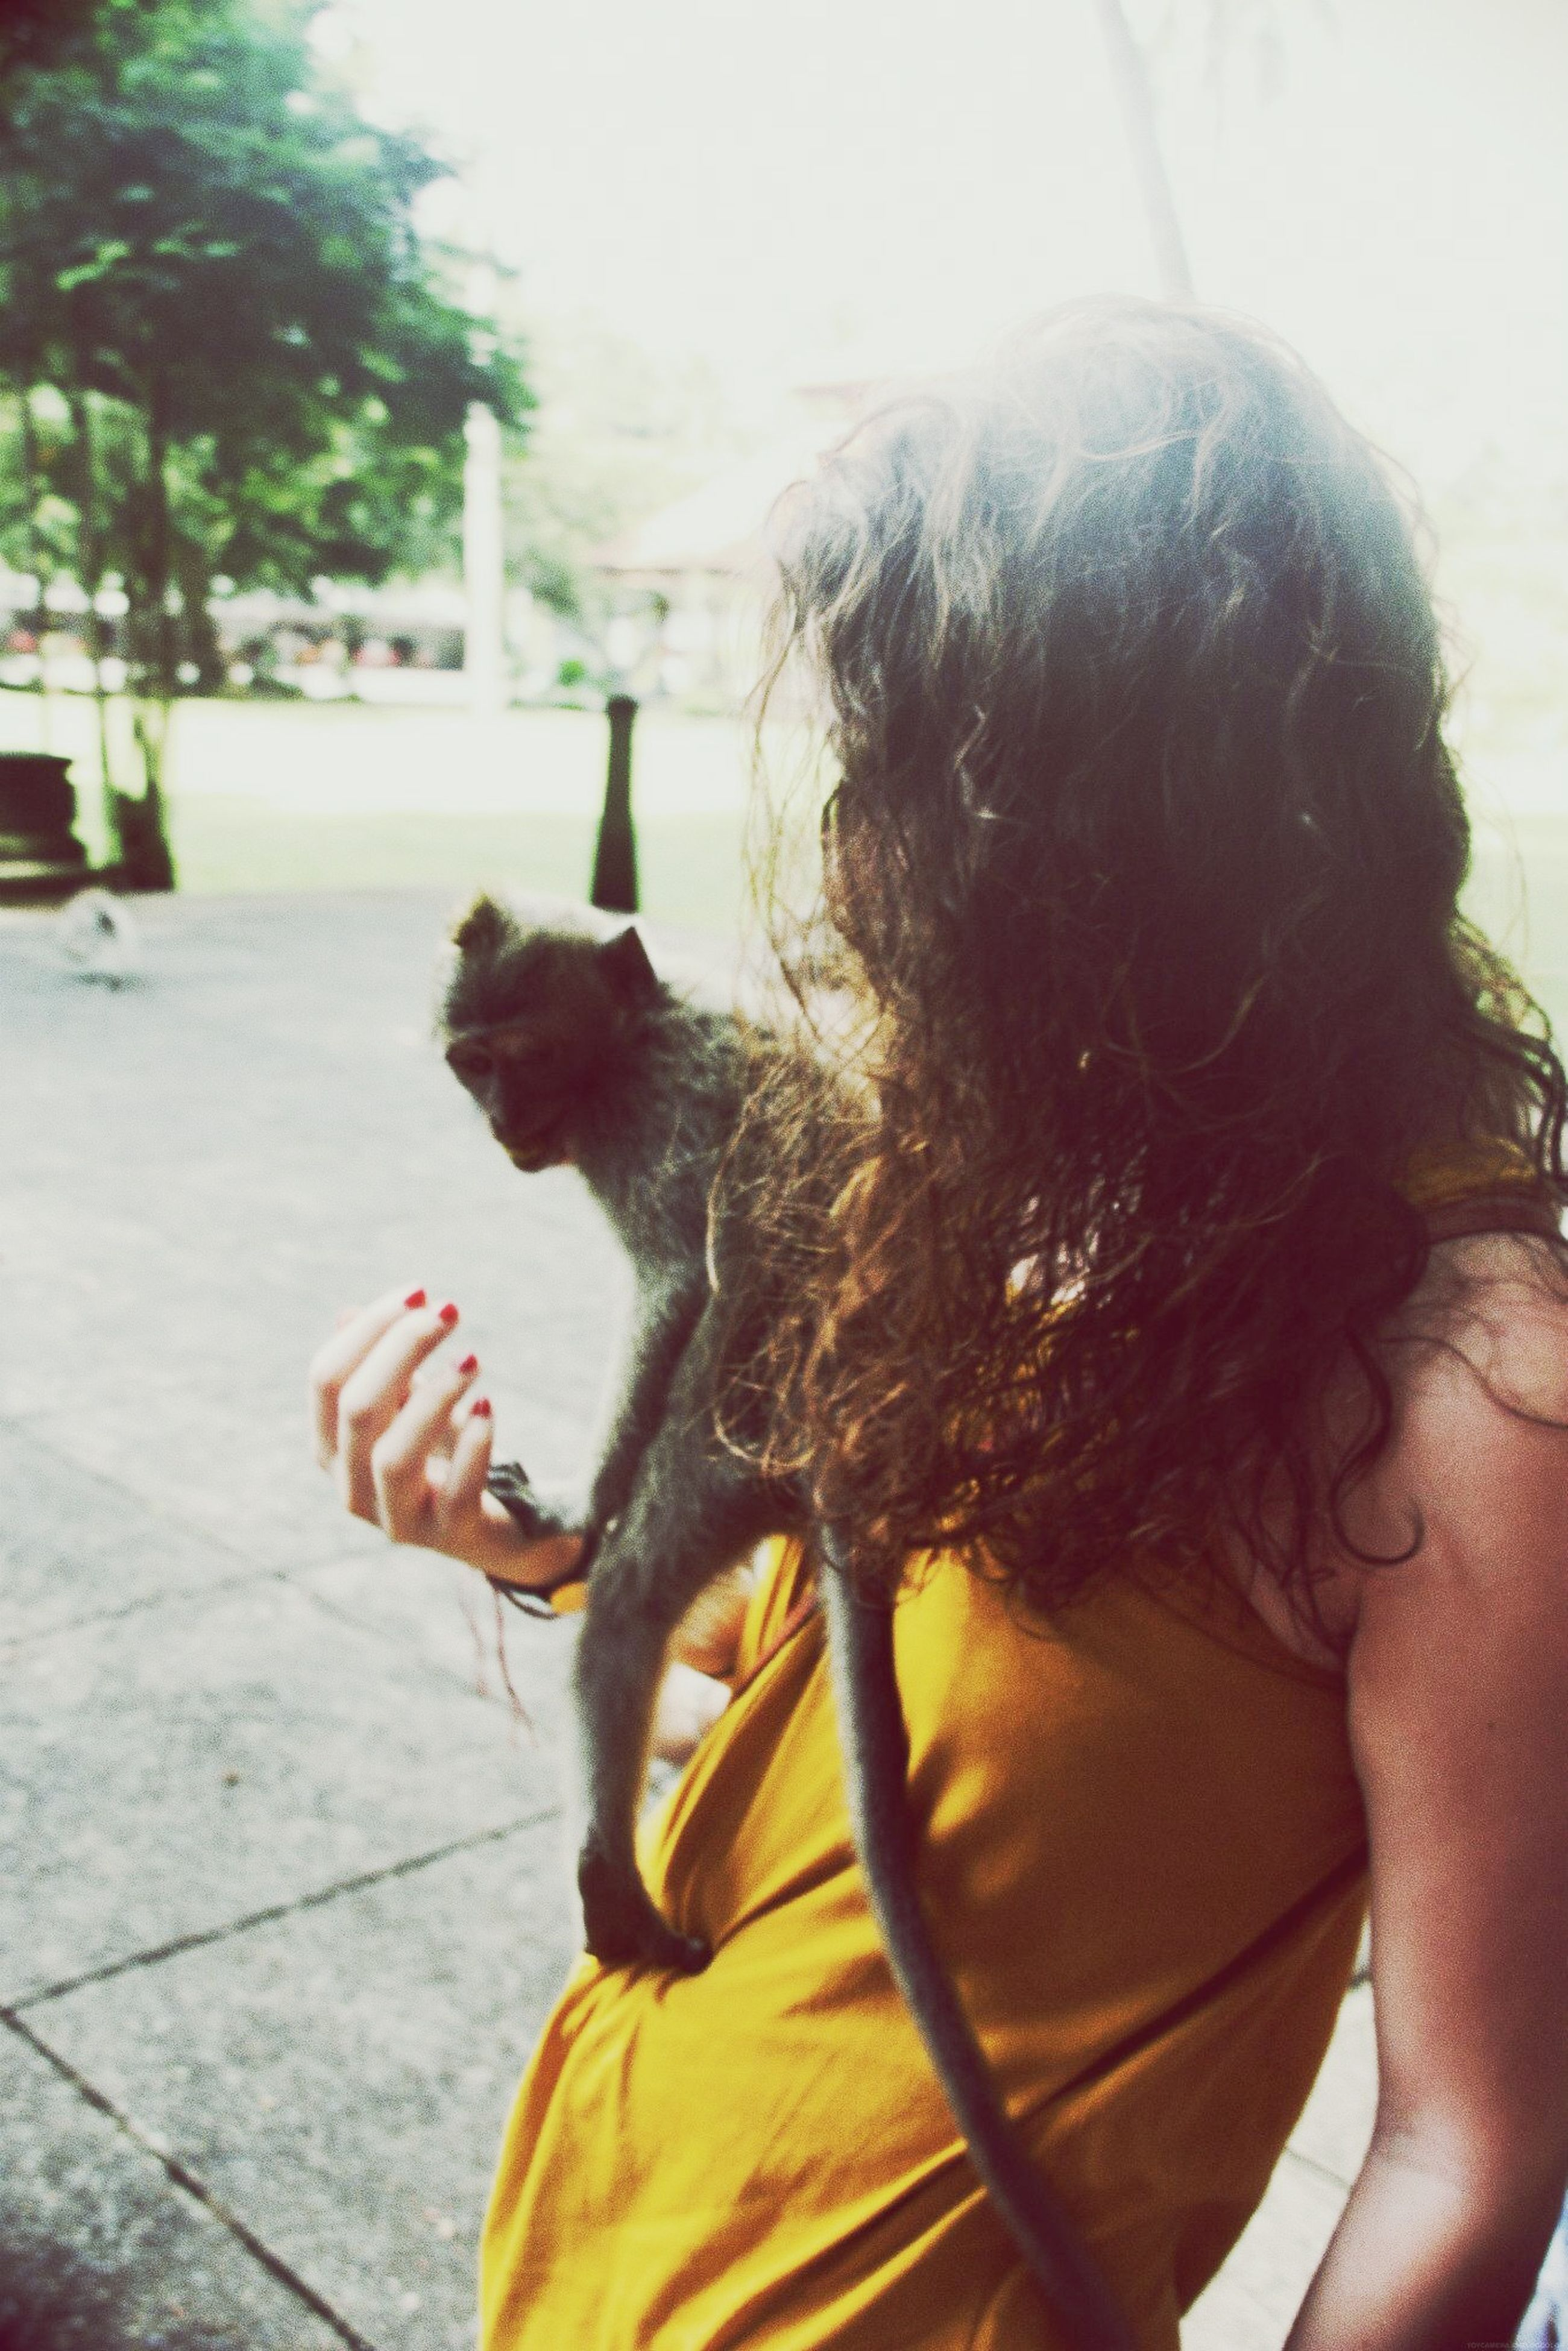 lifestyles, leisure activity, one animal, side view, focus on foreground, headshot, long hair, person, rear view, animal themes, looking away, close-up, young women, sunlight, holding, day, part of